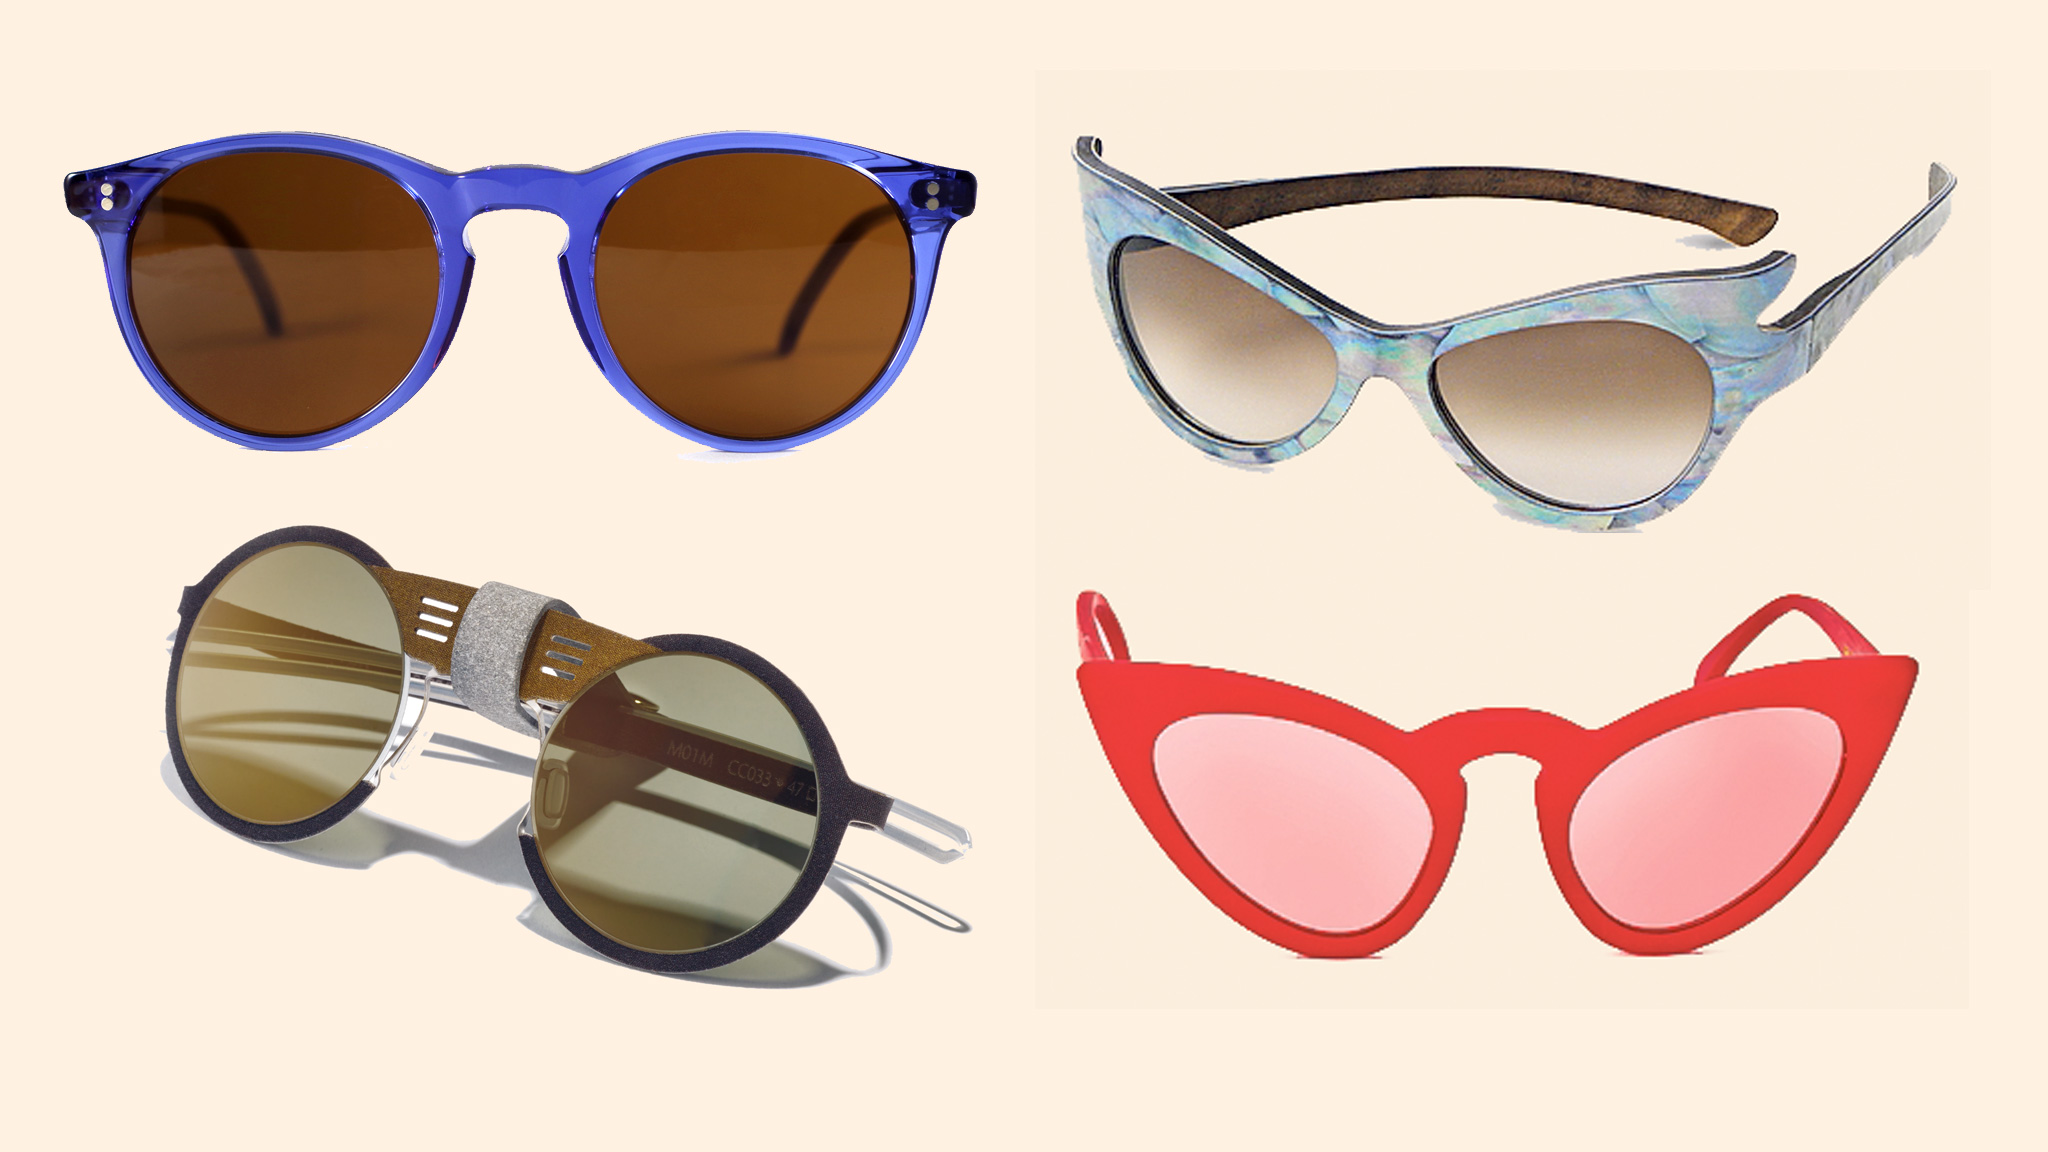 All eyes on independent sunglasses brands